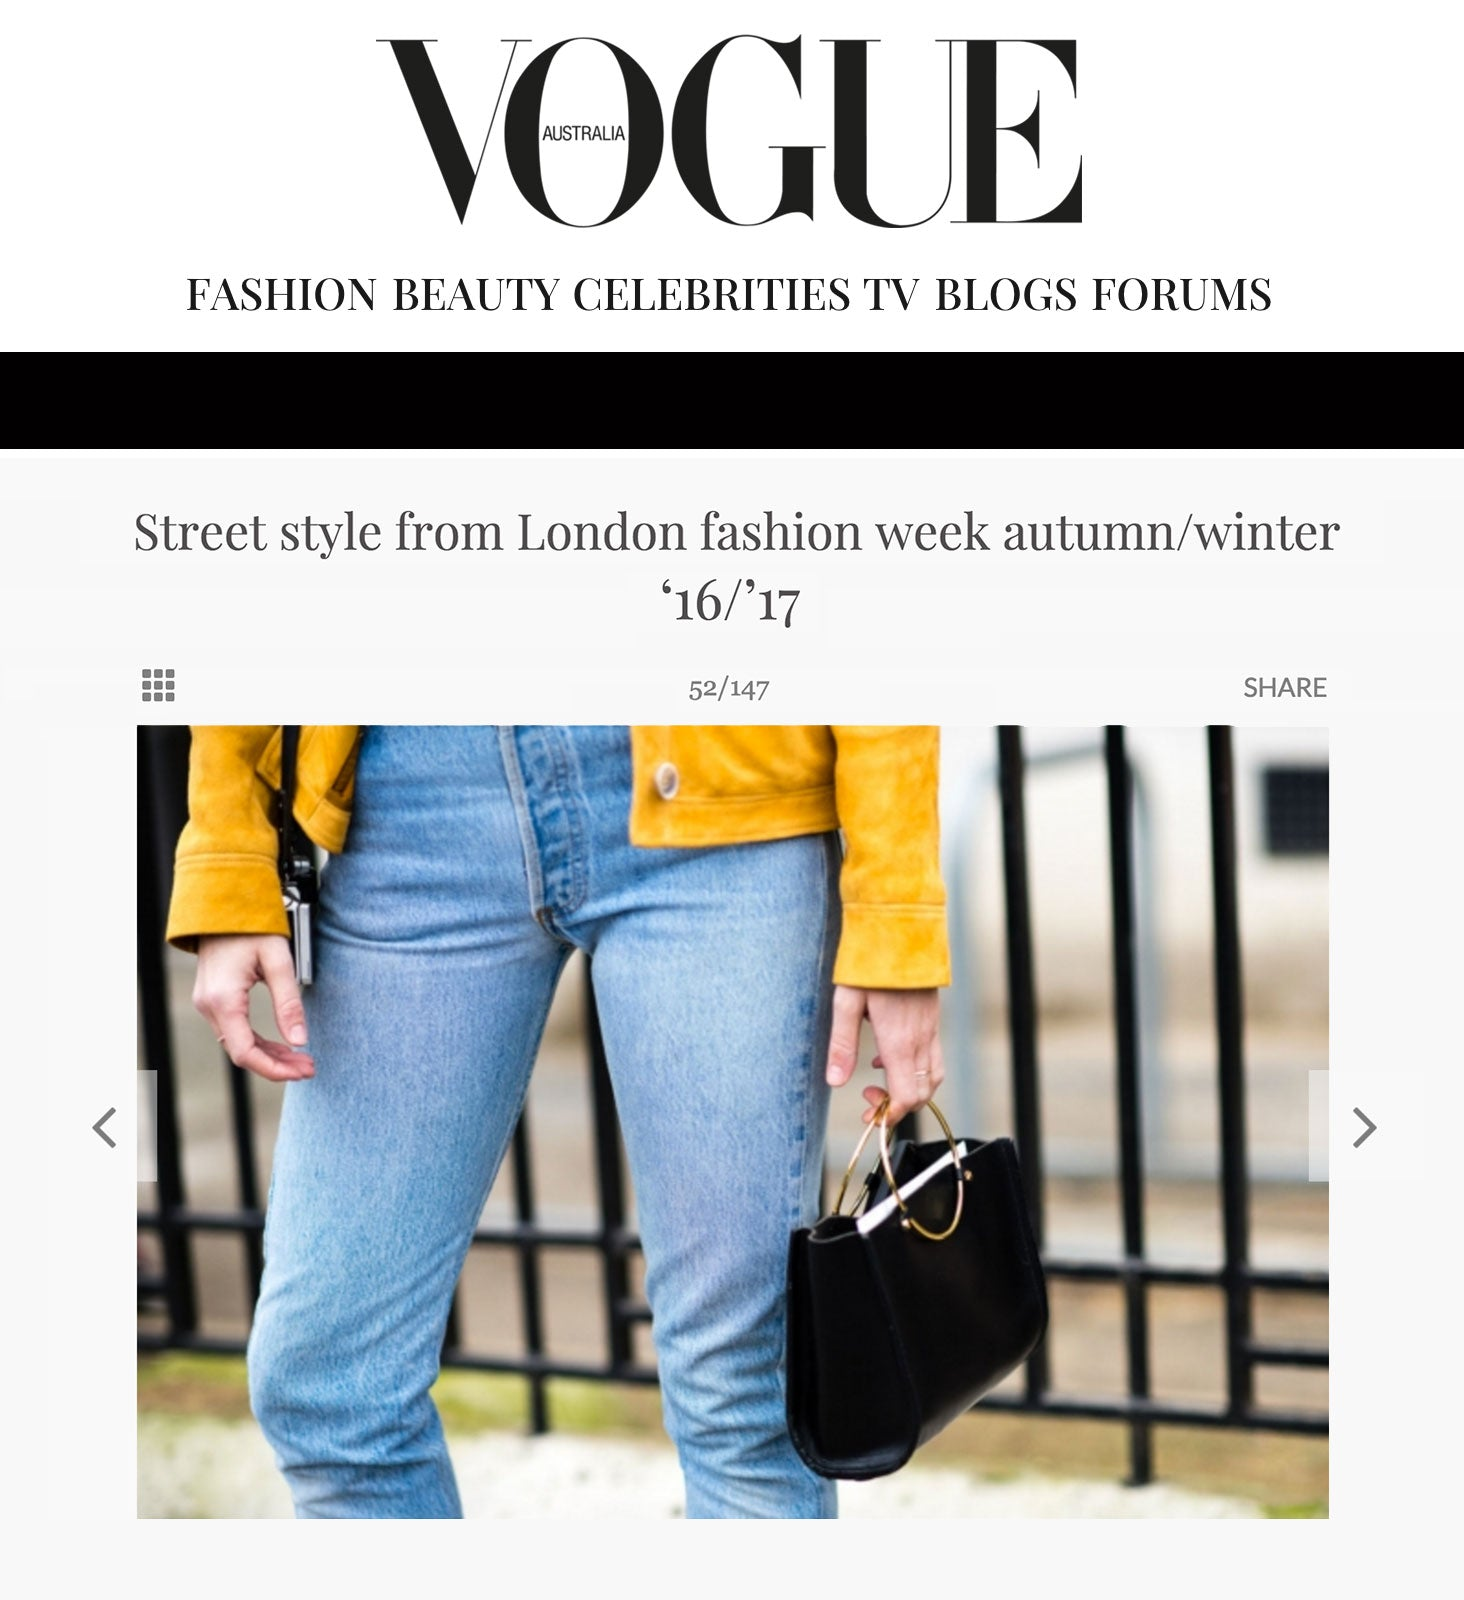 Vogue Australia_FutureGloryCo_Handbags